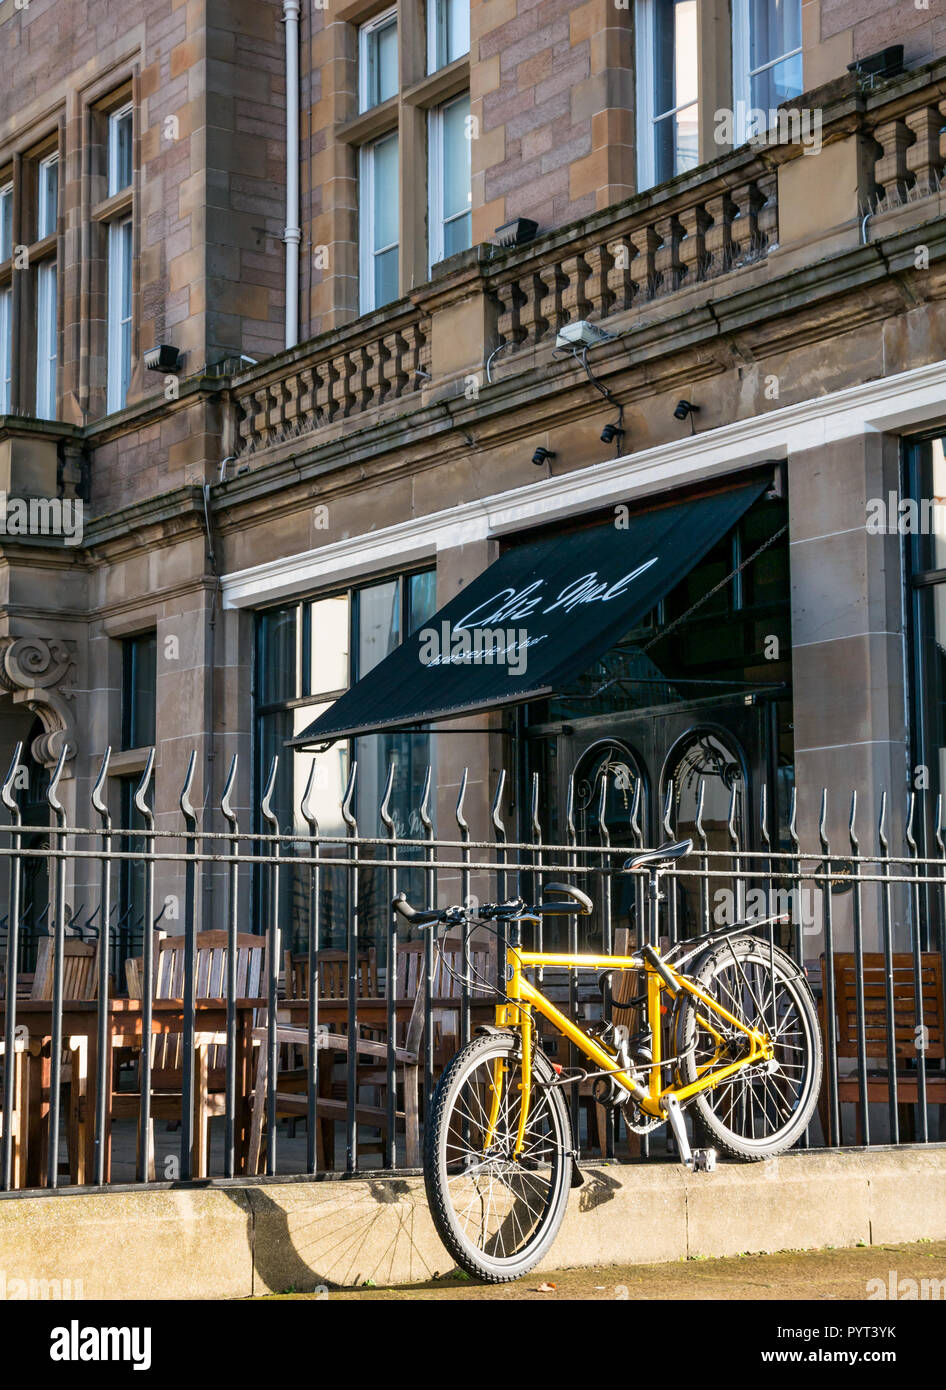 Front of Chez Mal brasserie restaurant at Malmaison Hotel with yellow bicycle locked to railings, The Shore, Leith, Edinburgh, Scotland, UK - Stock Image